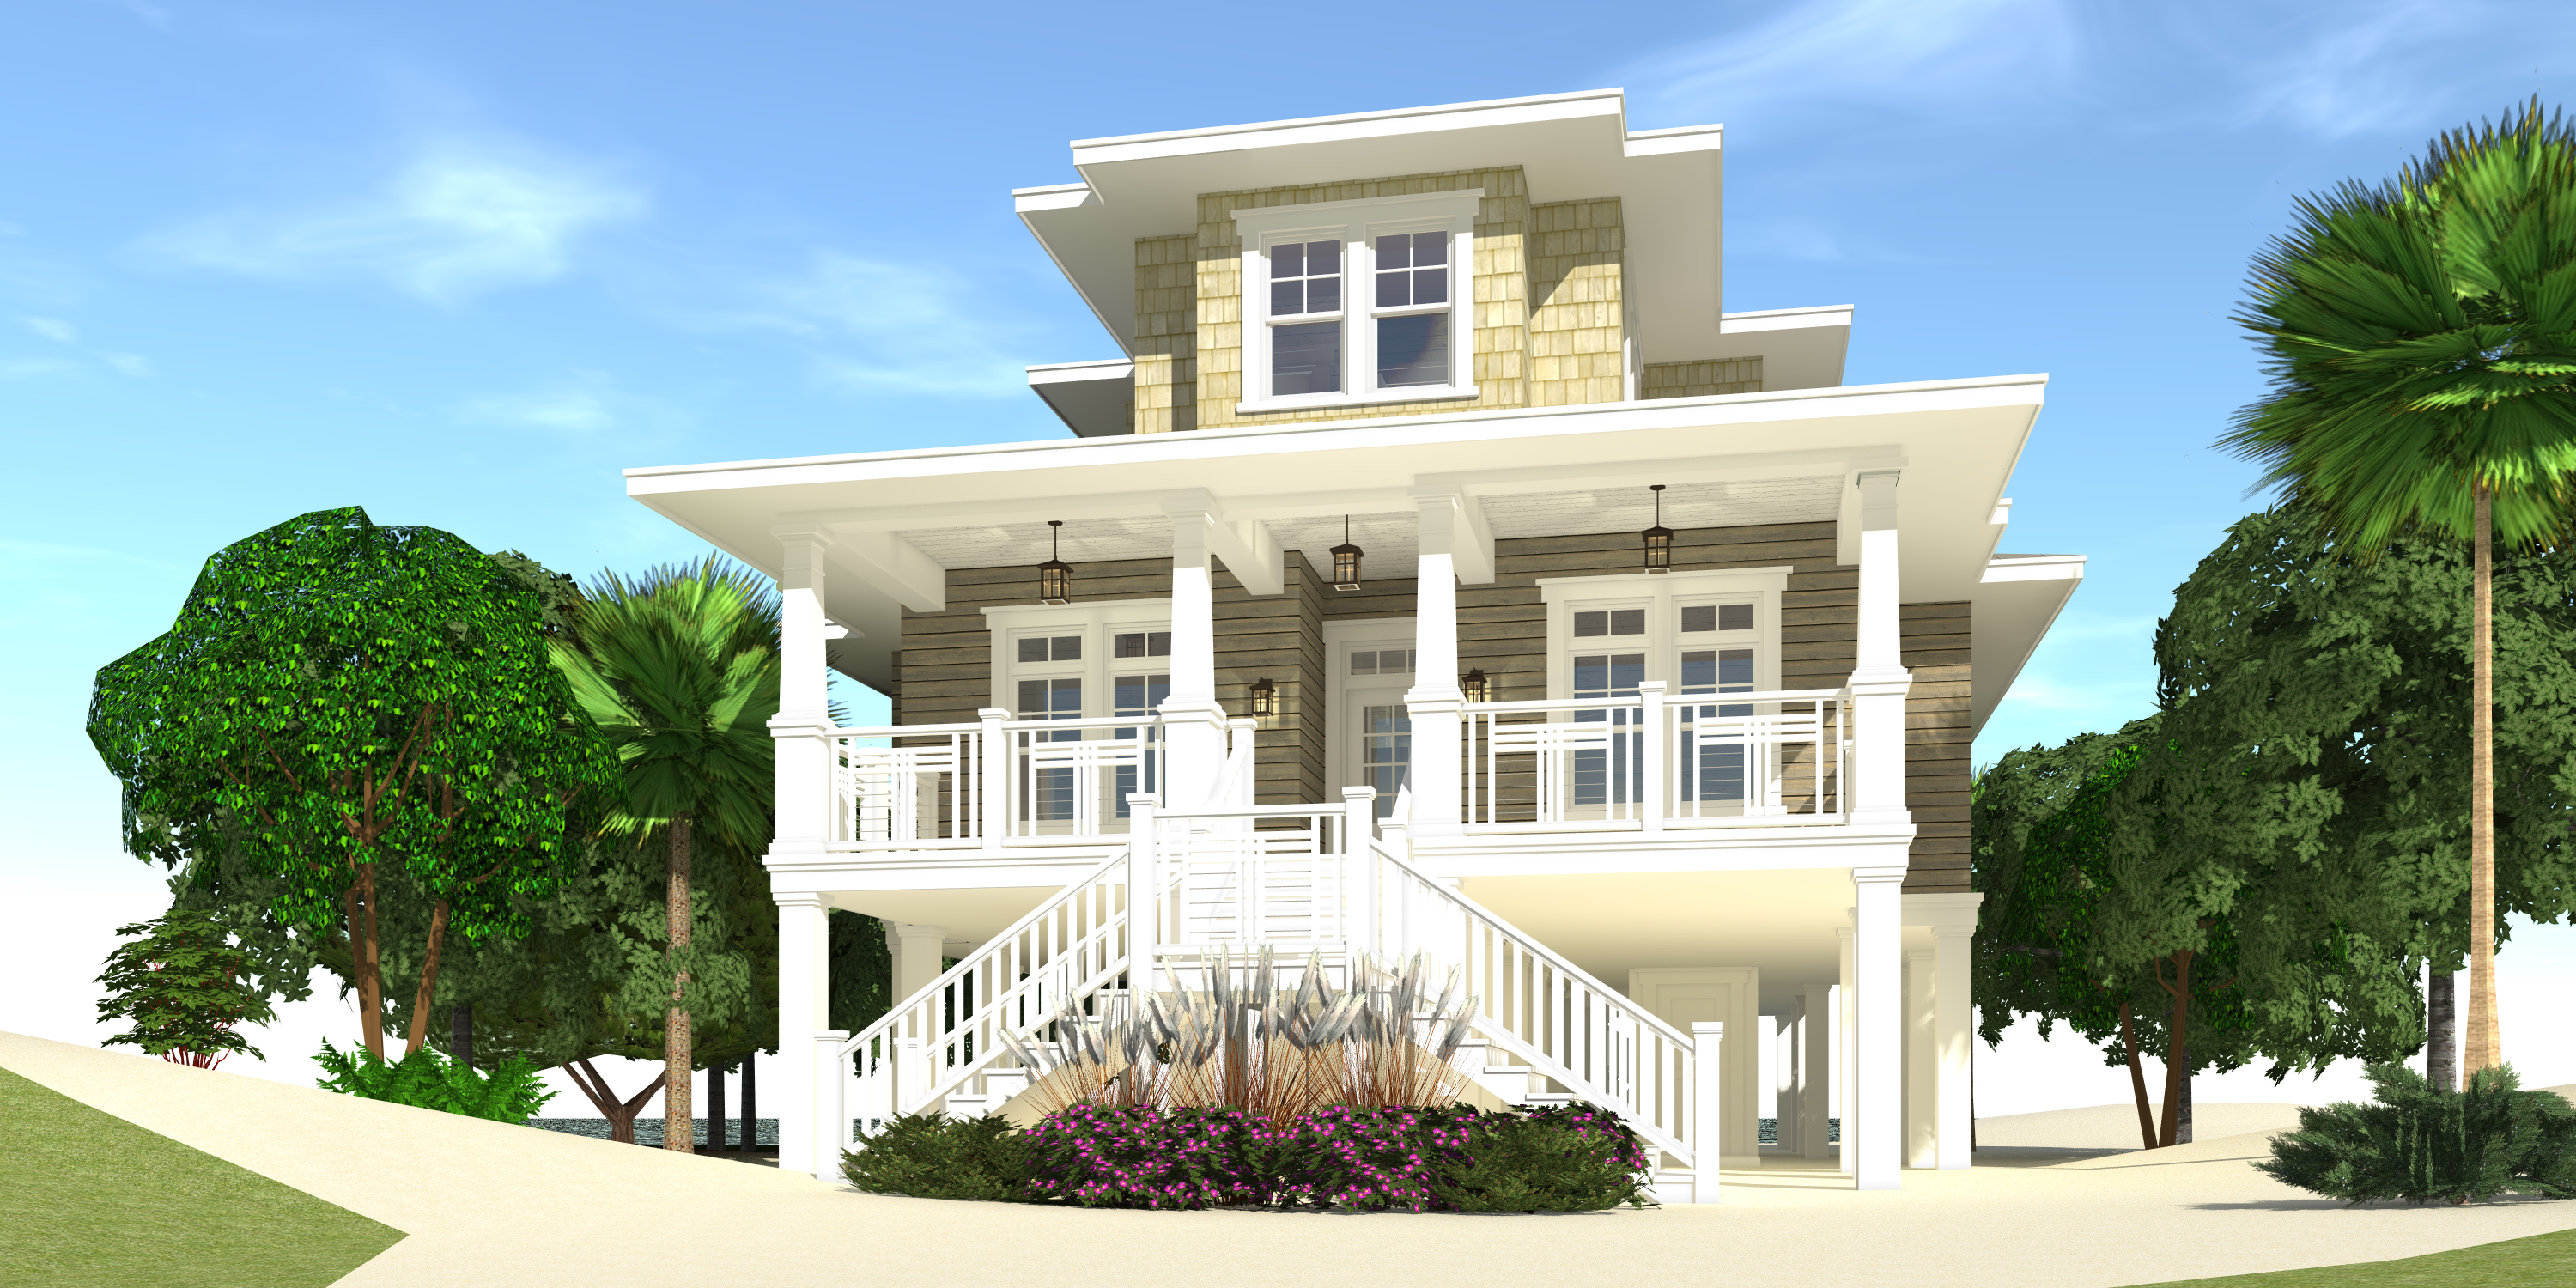 Fenton house plan tyree house plans for Coastal home plans